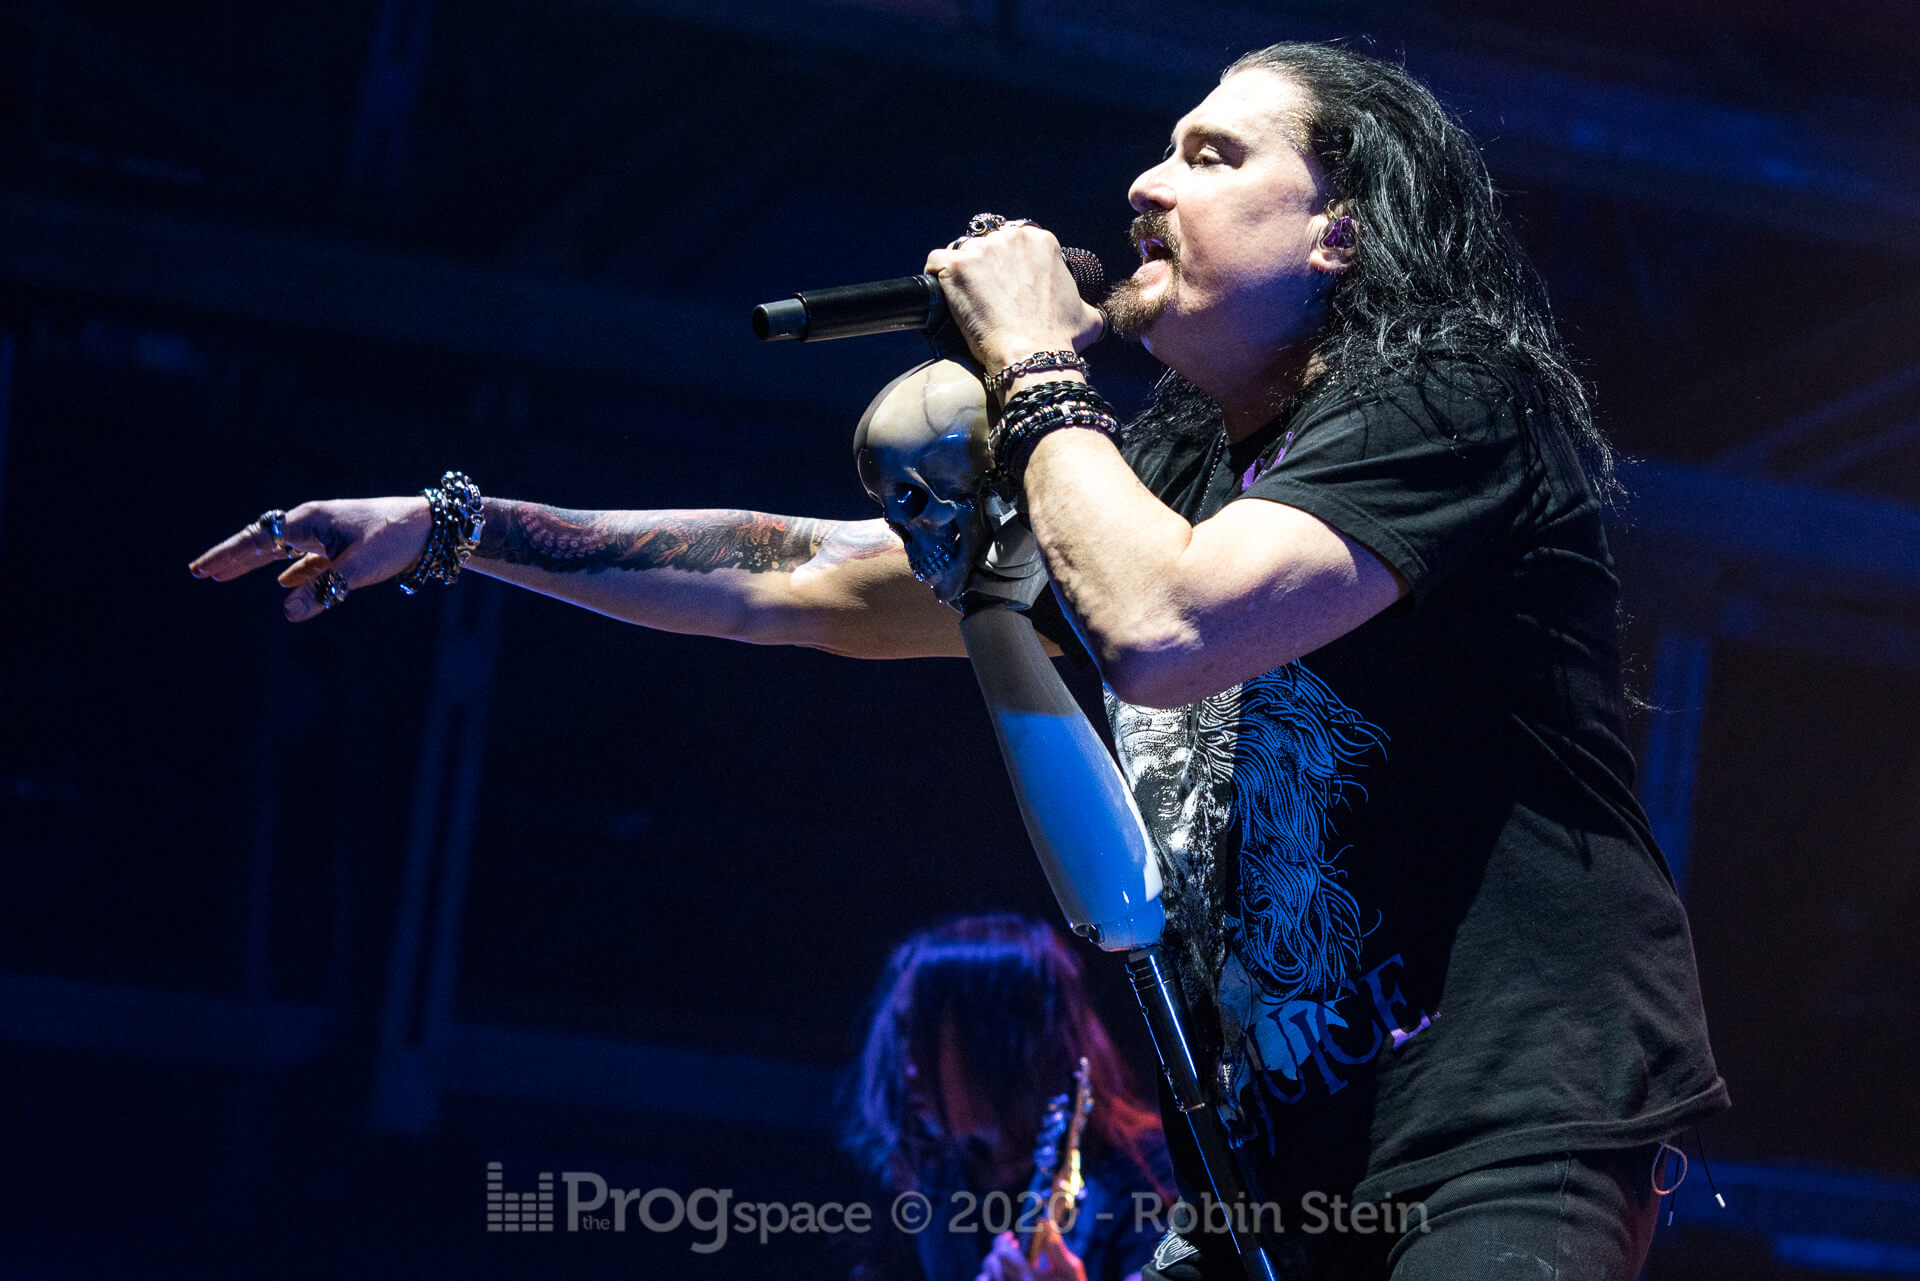 Dream Theater at Zenith Munich, 9 February 2020